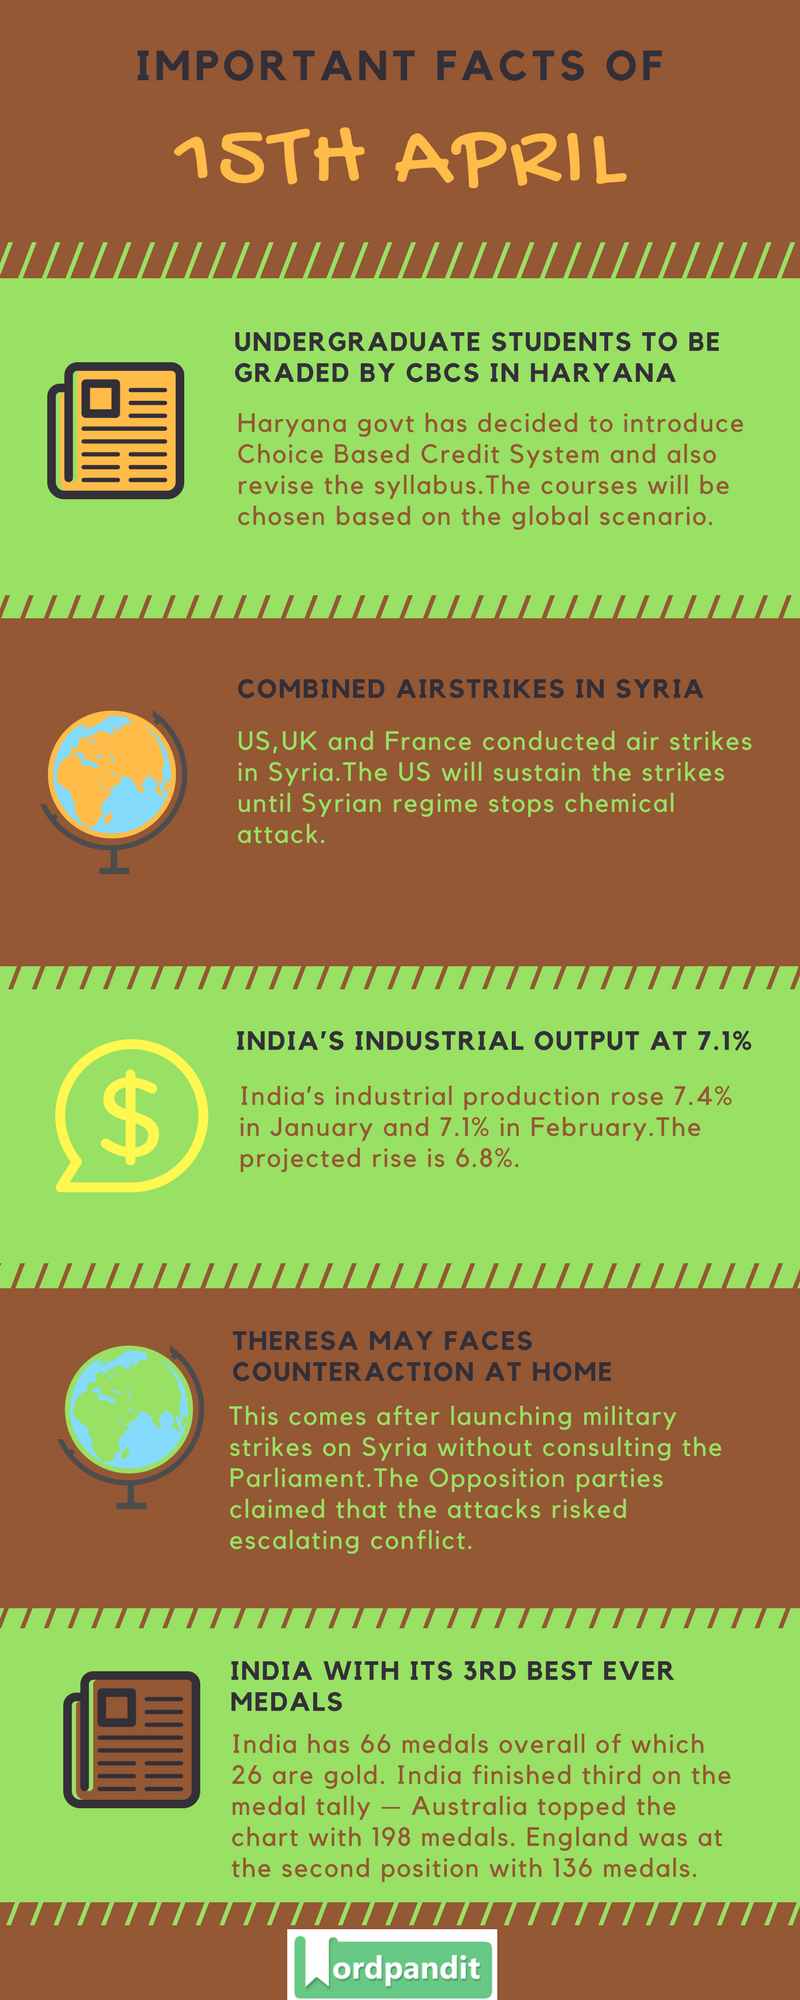 Daily Current Affairs 15 April 2018 Current Affairs Quiz April 15 2018 Current Affairs Infographic